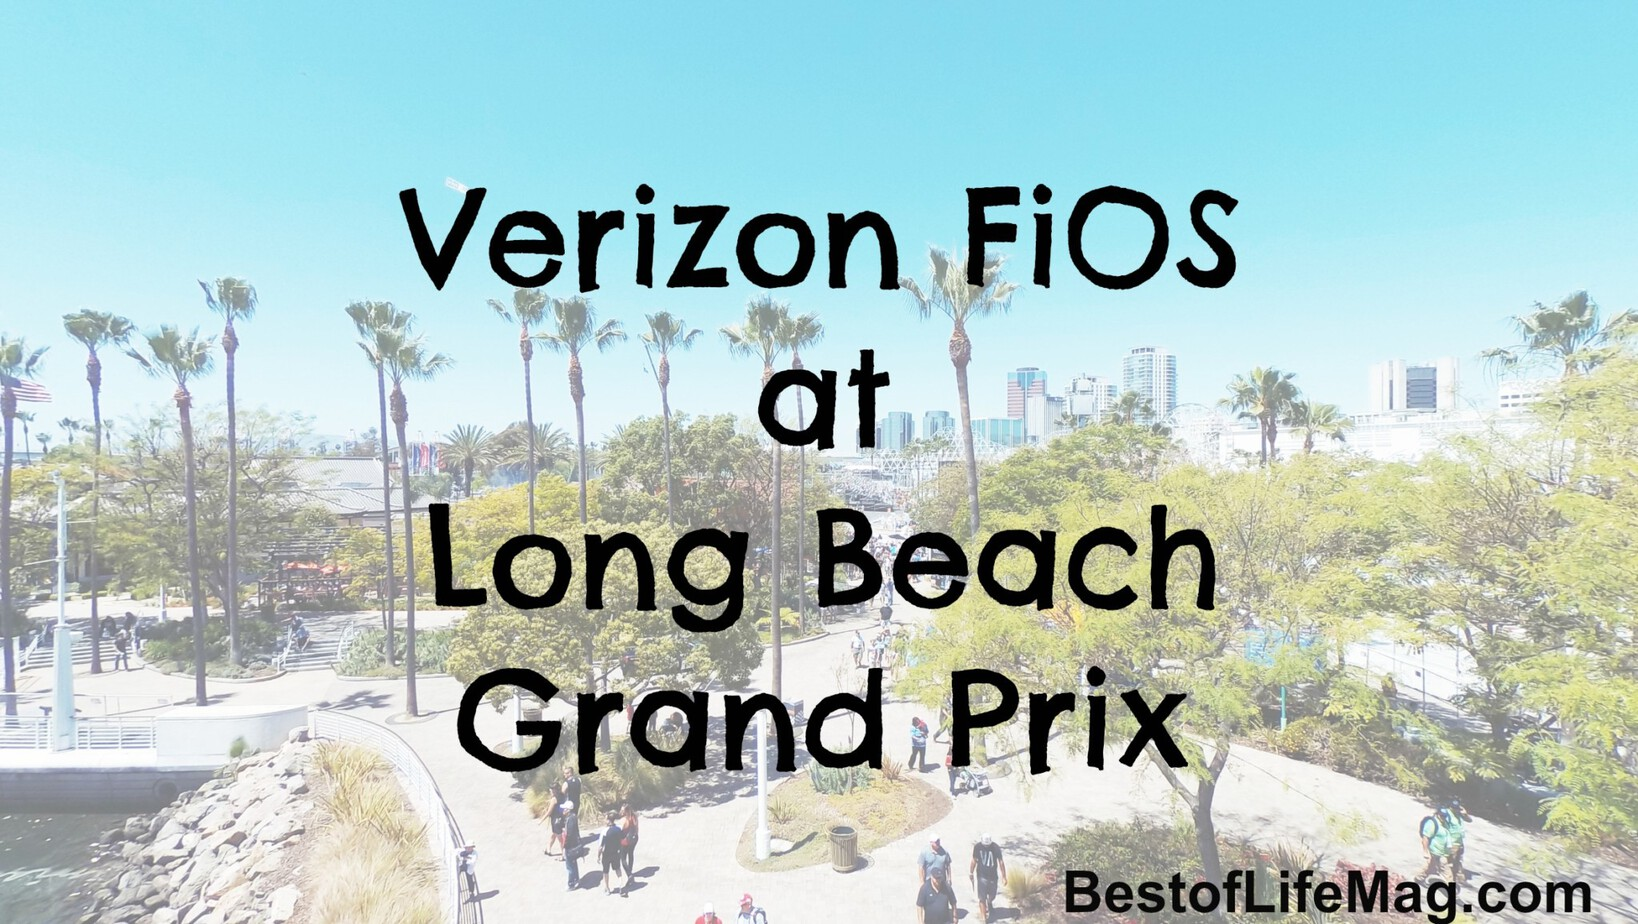 Verizon FiOS at Long Beach Grand Prix